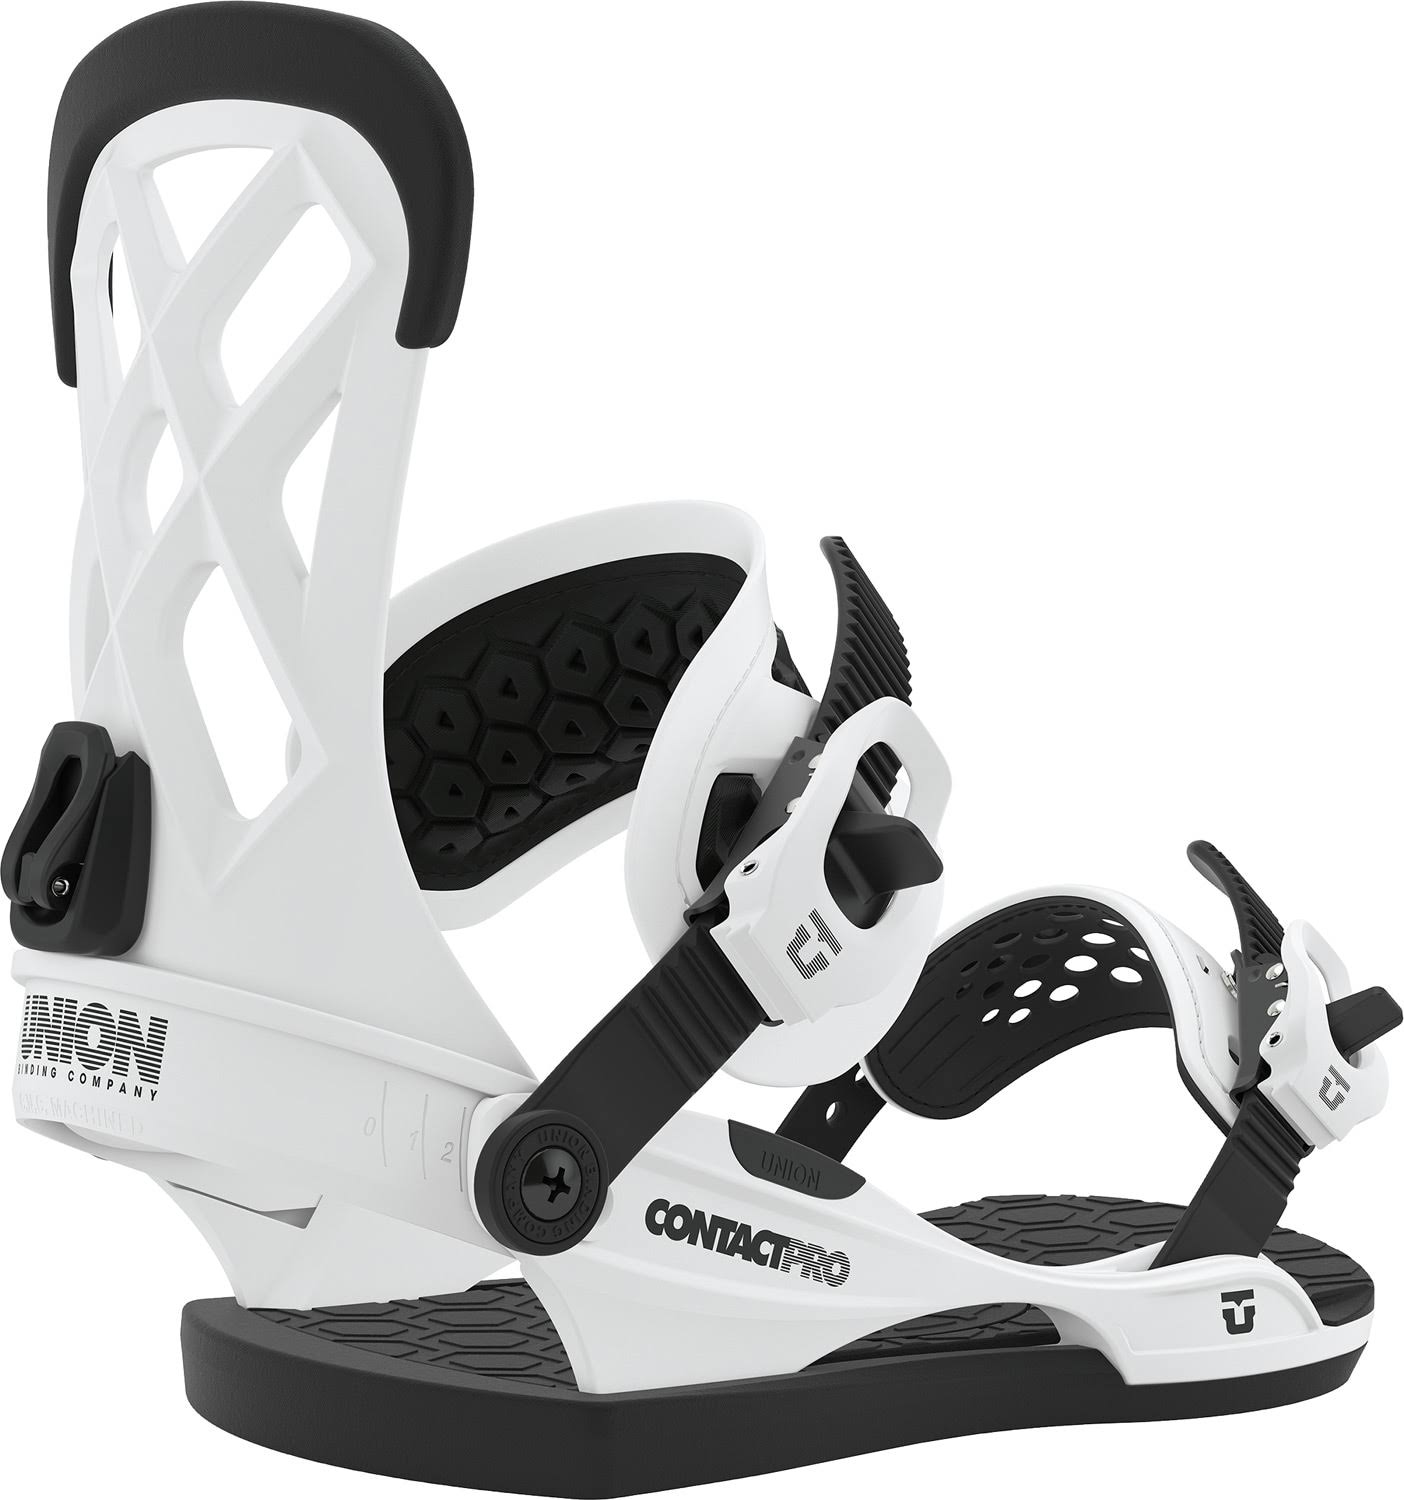 Union Adult Unisex Contact Pro Snowboard Bindings - White, Large